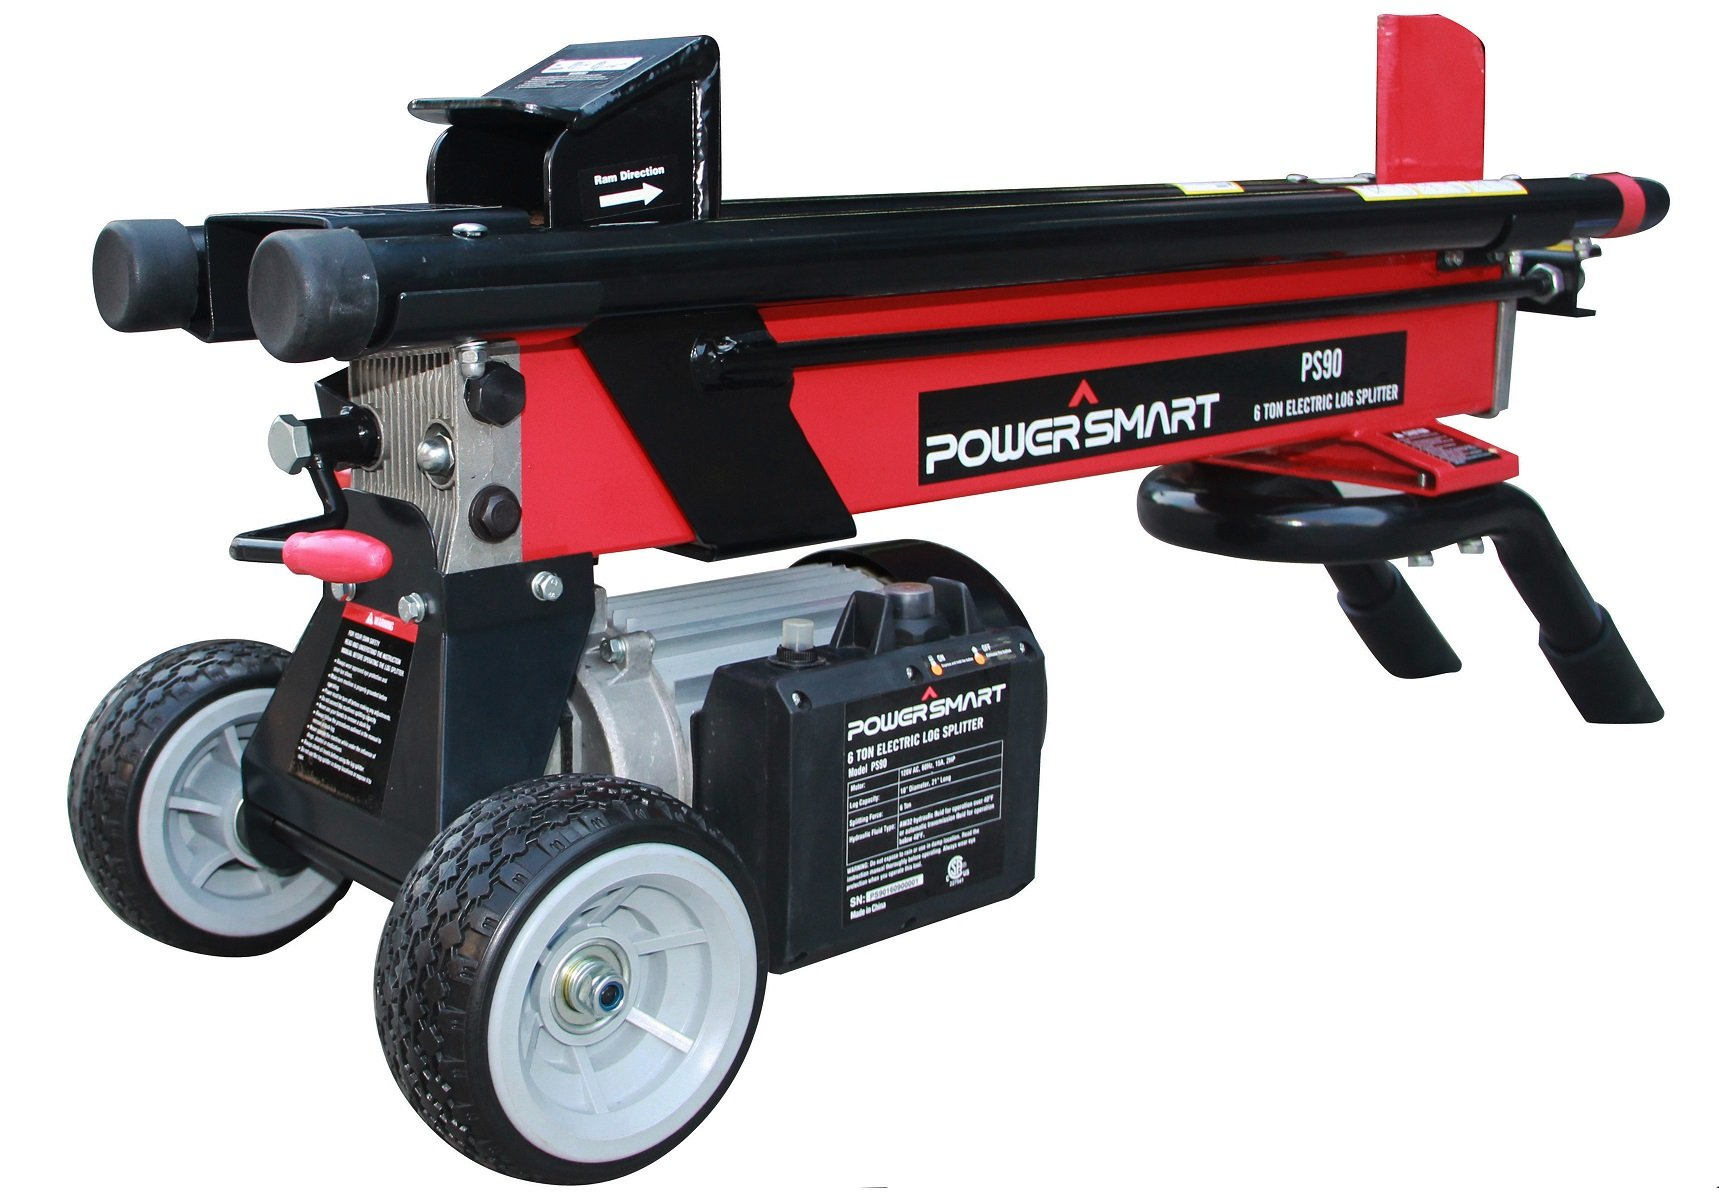 PowerSmart PS90 6-Ton 15 Amp Electric Log Splitter, Red, Black by PowerSmart